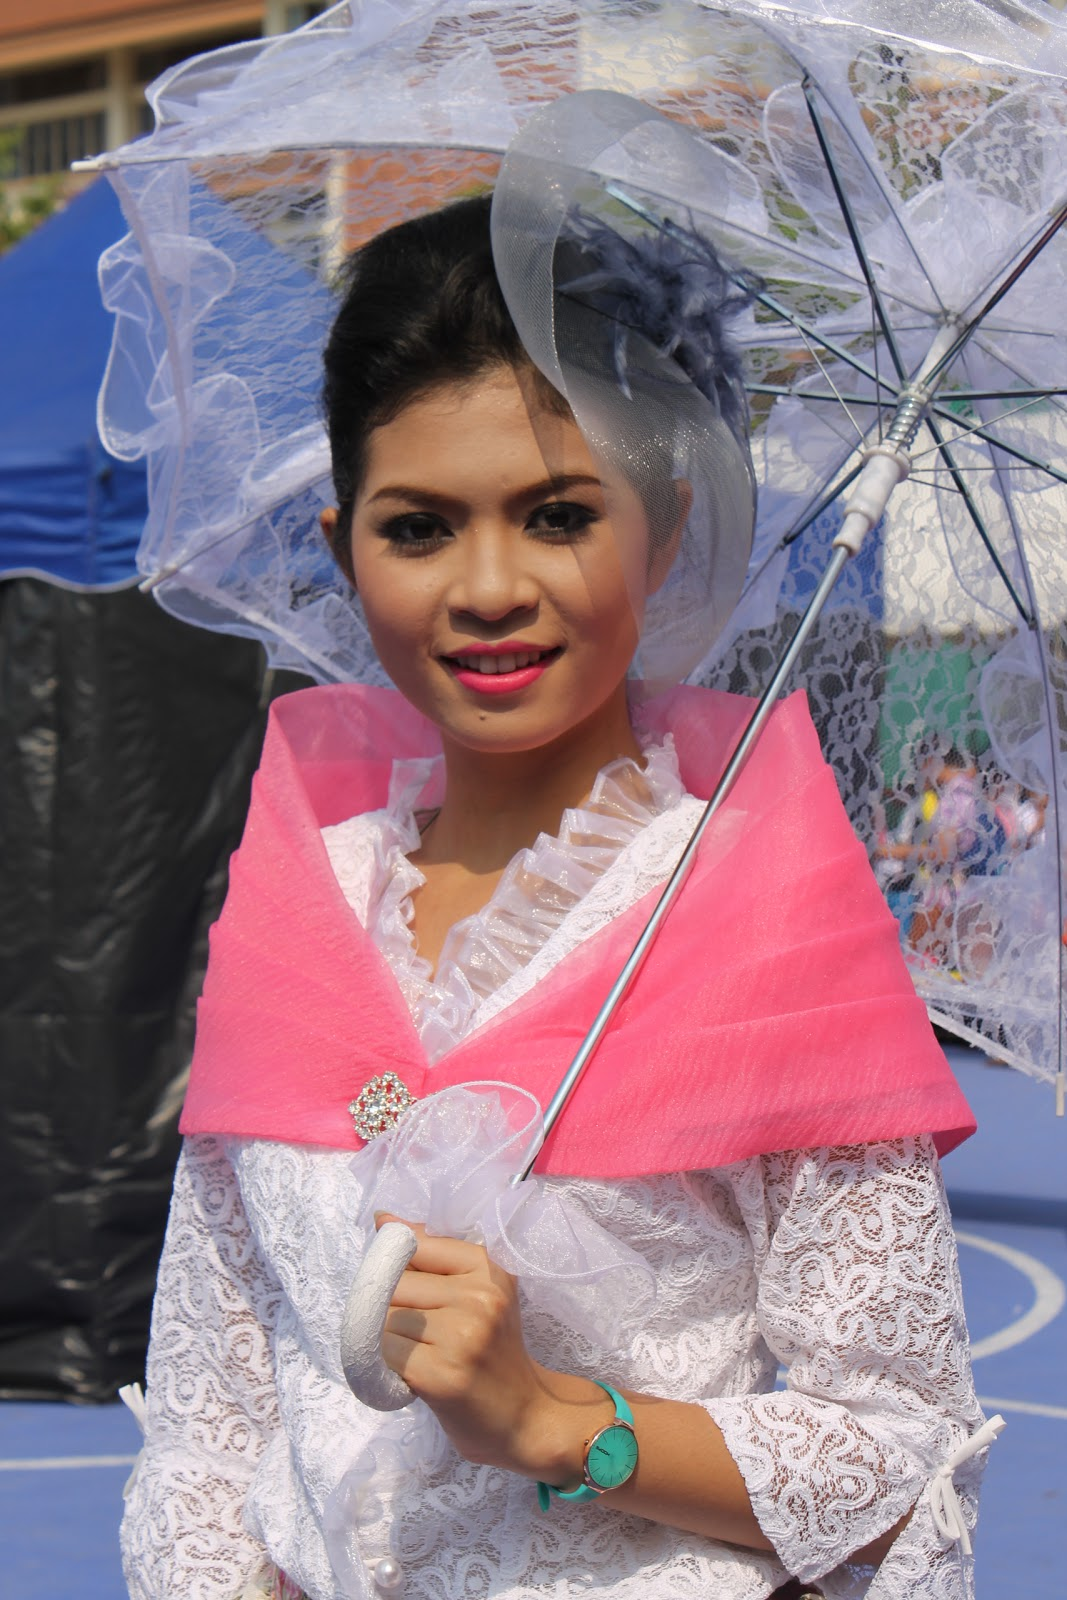 IMG_5480 - Pure Filipiniana Beauty - Philippine Photo Gallery